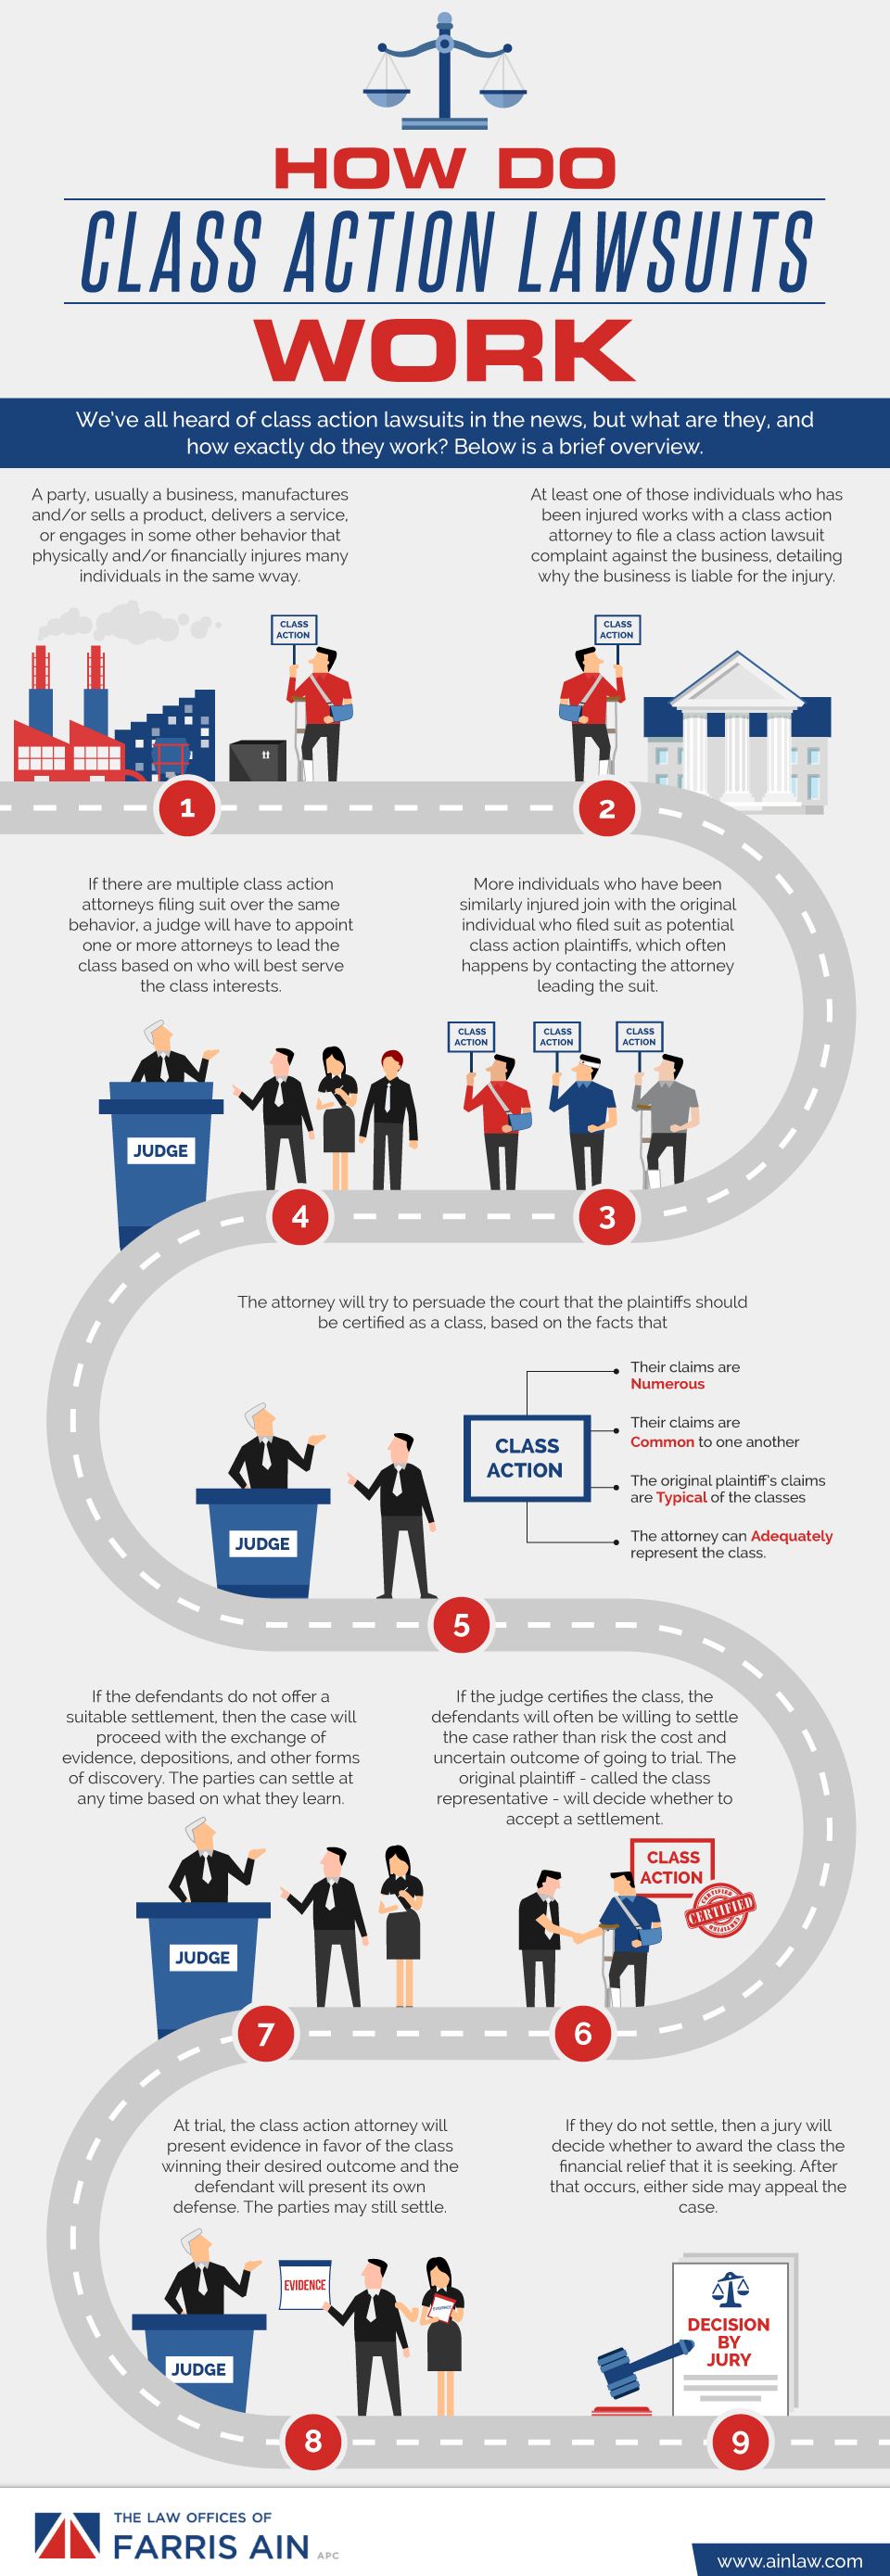 an infographic illustrating how class action lawsuits work